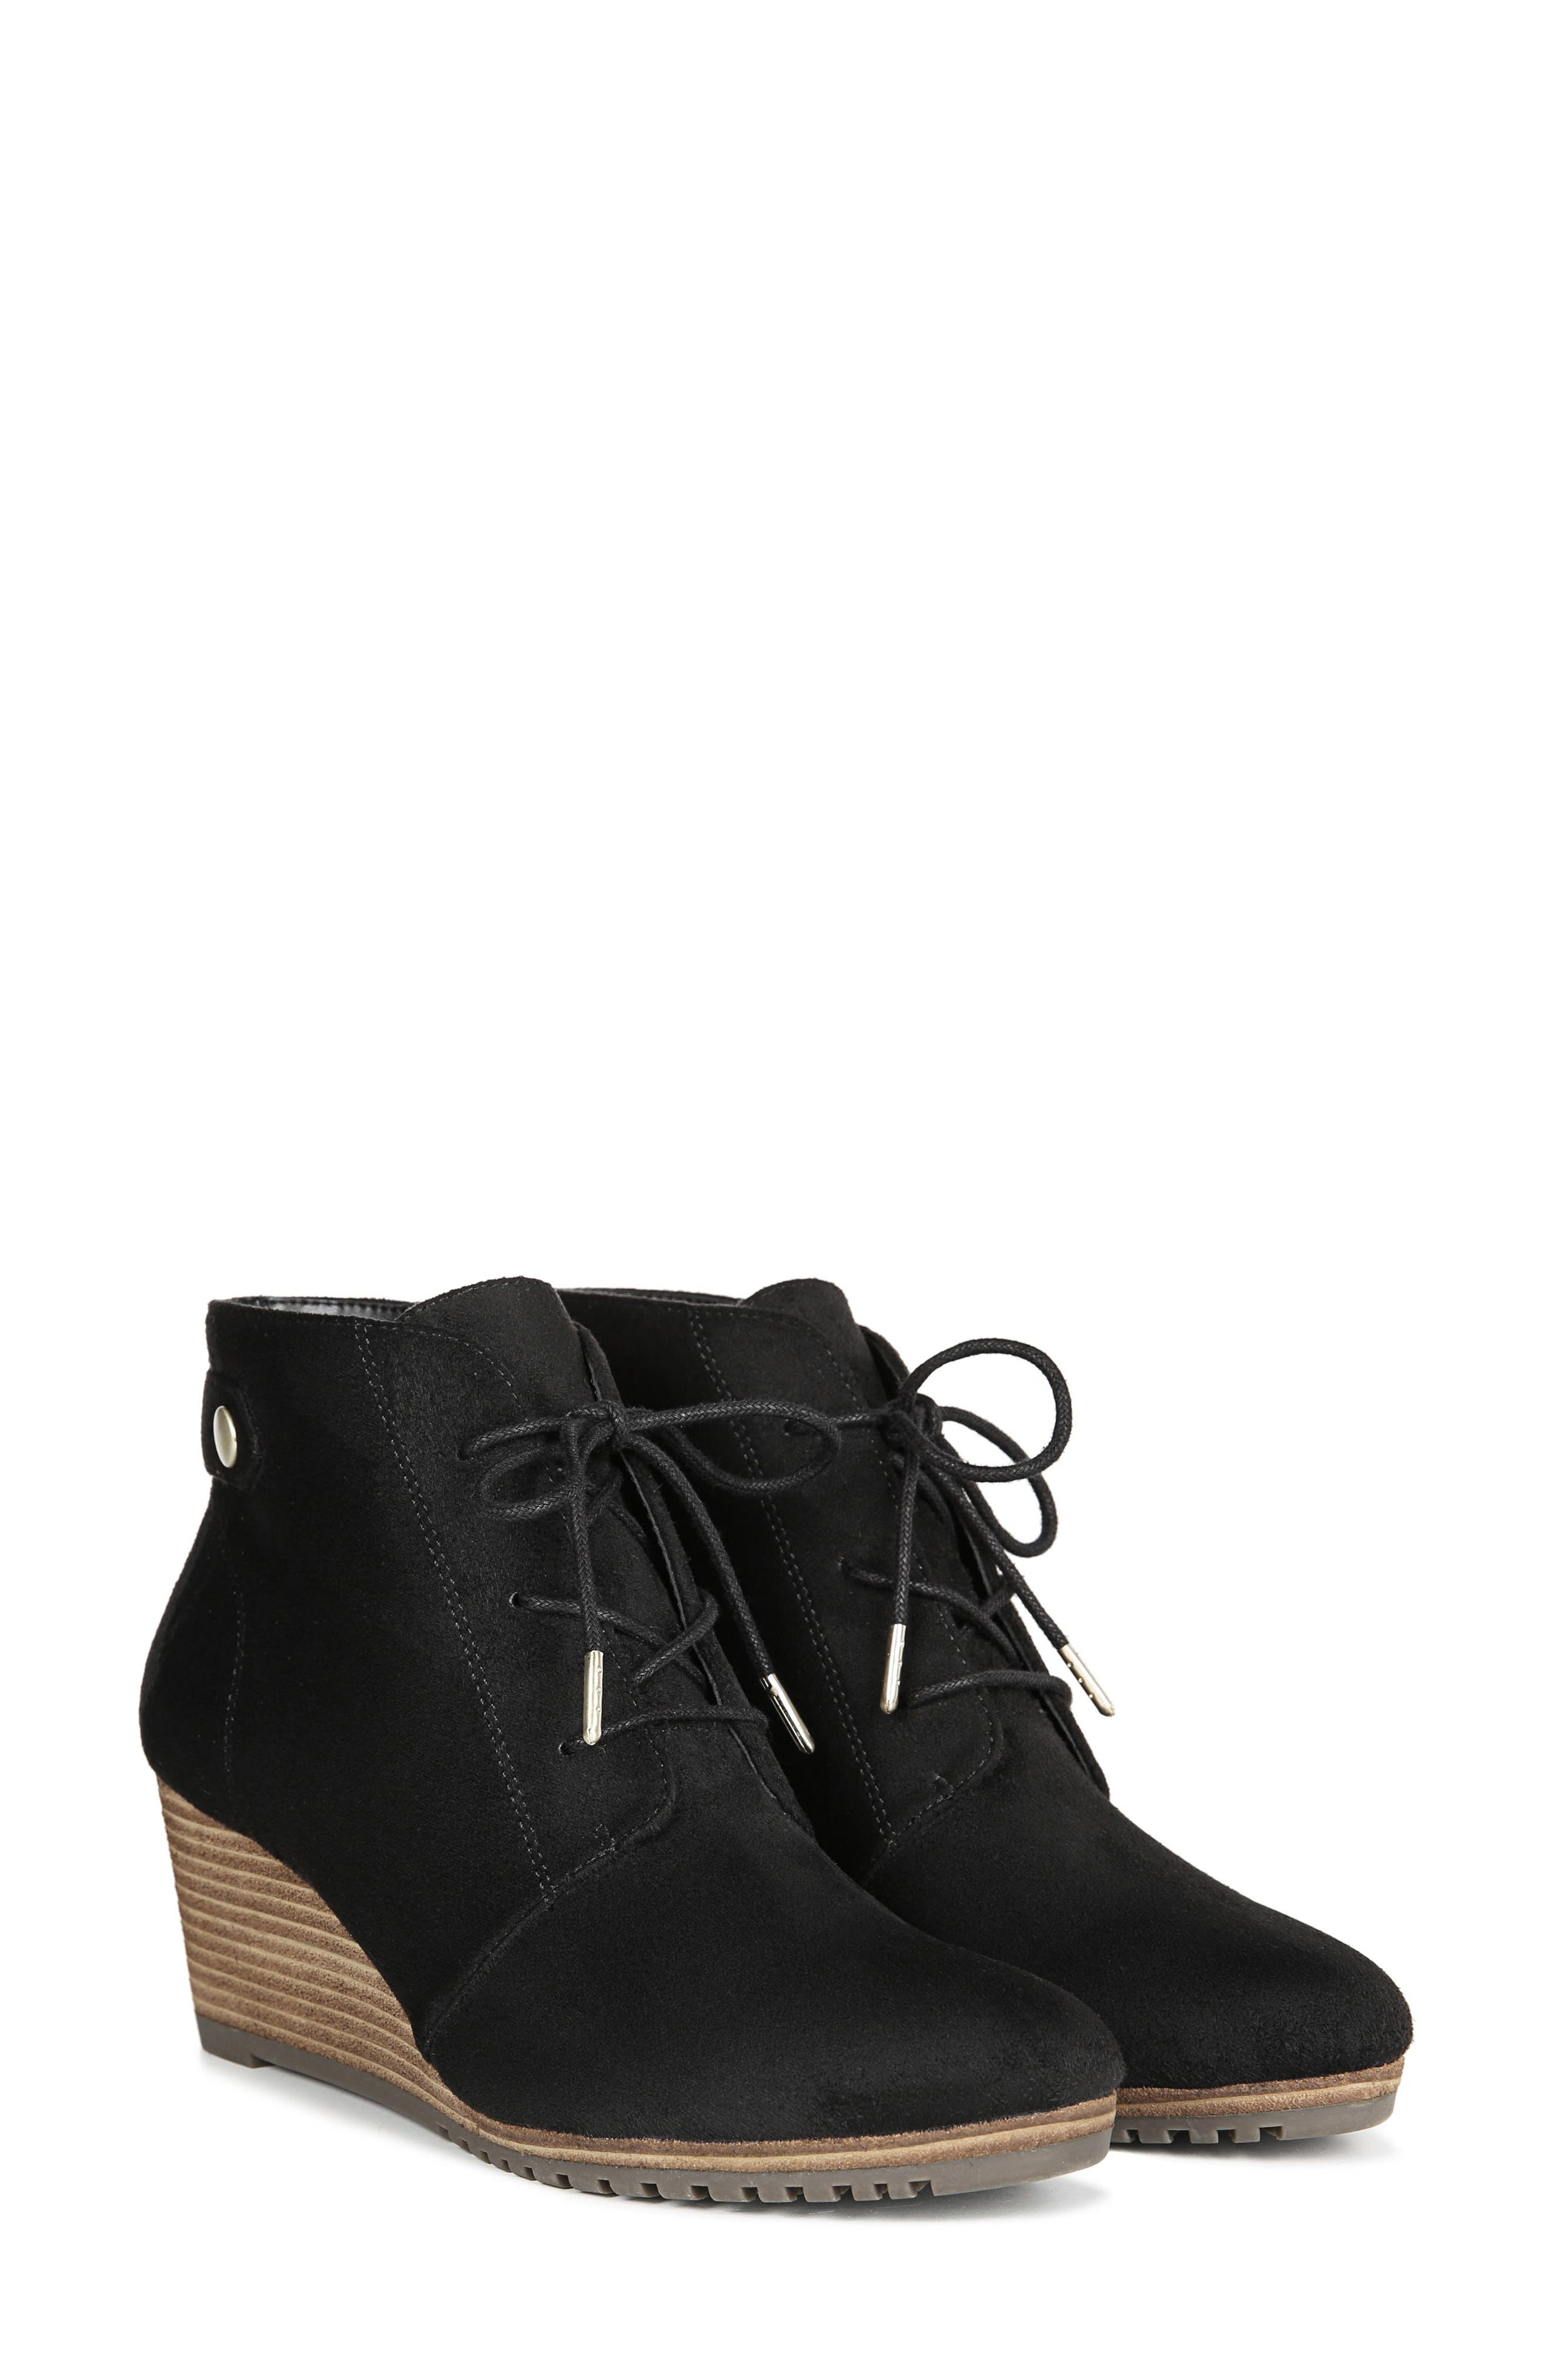 Conquer Wedge Bootie,                             Alternate thumbnail 8, color,                             BLACK FABRIC